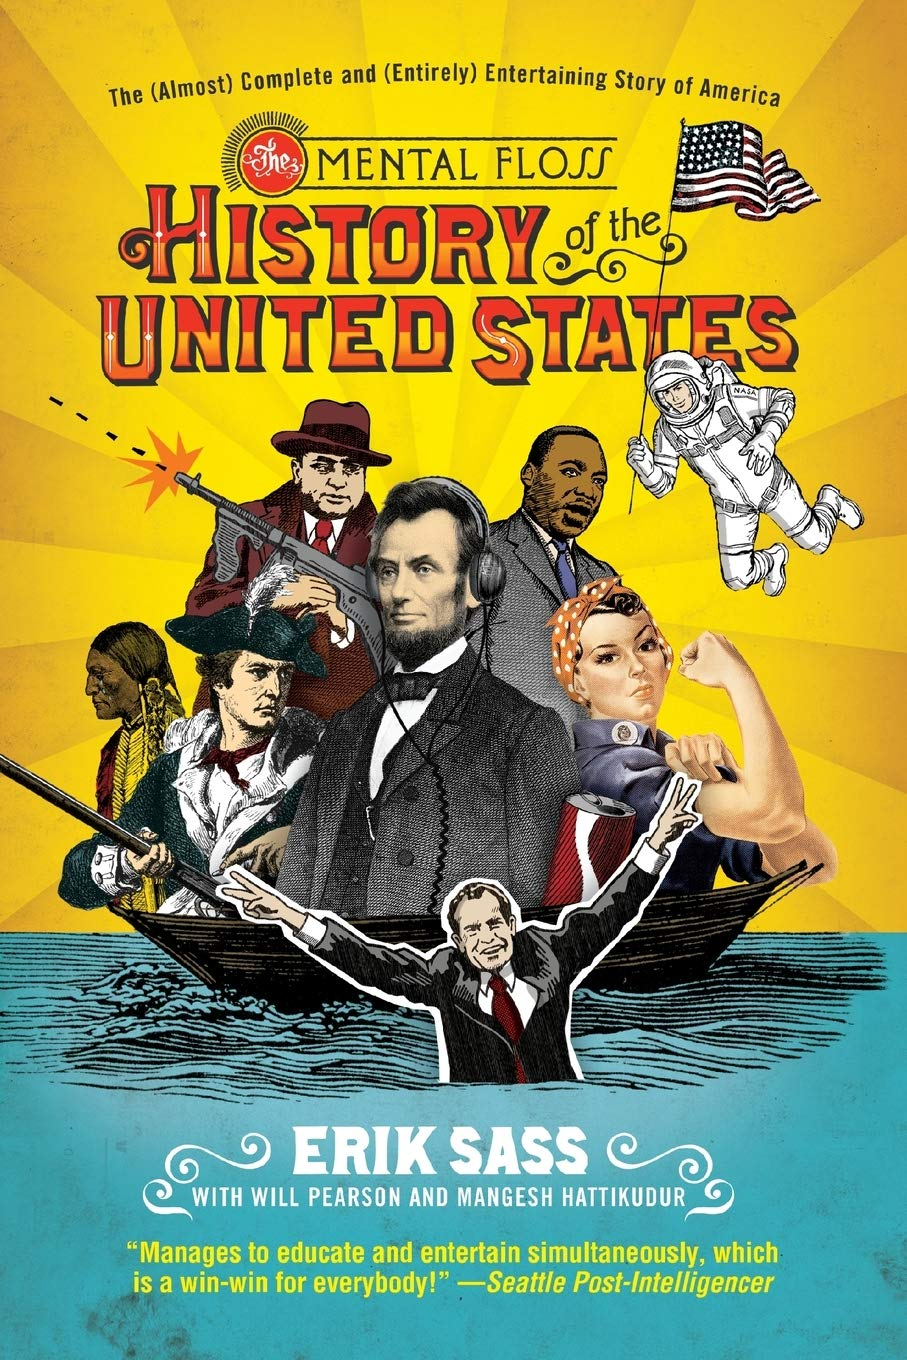 The Mental Floss History of the United States: The (Almost